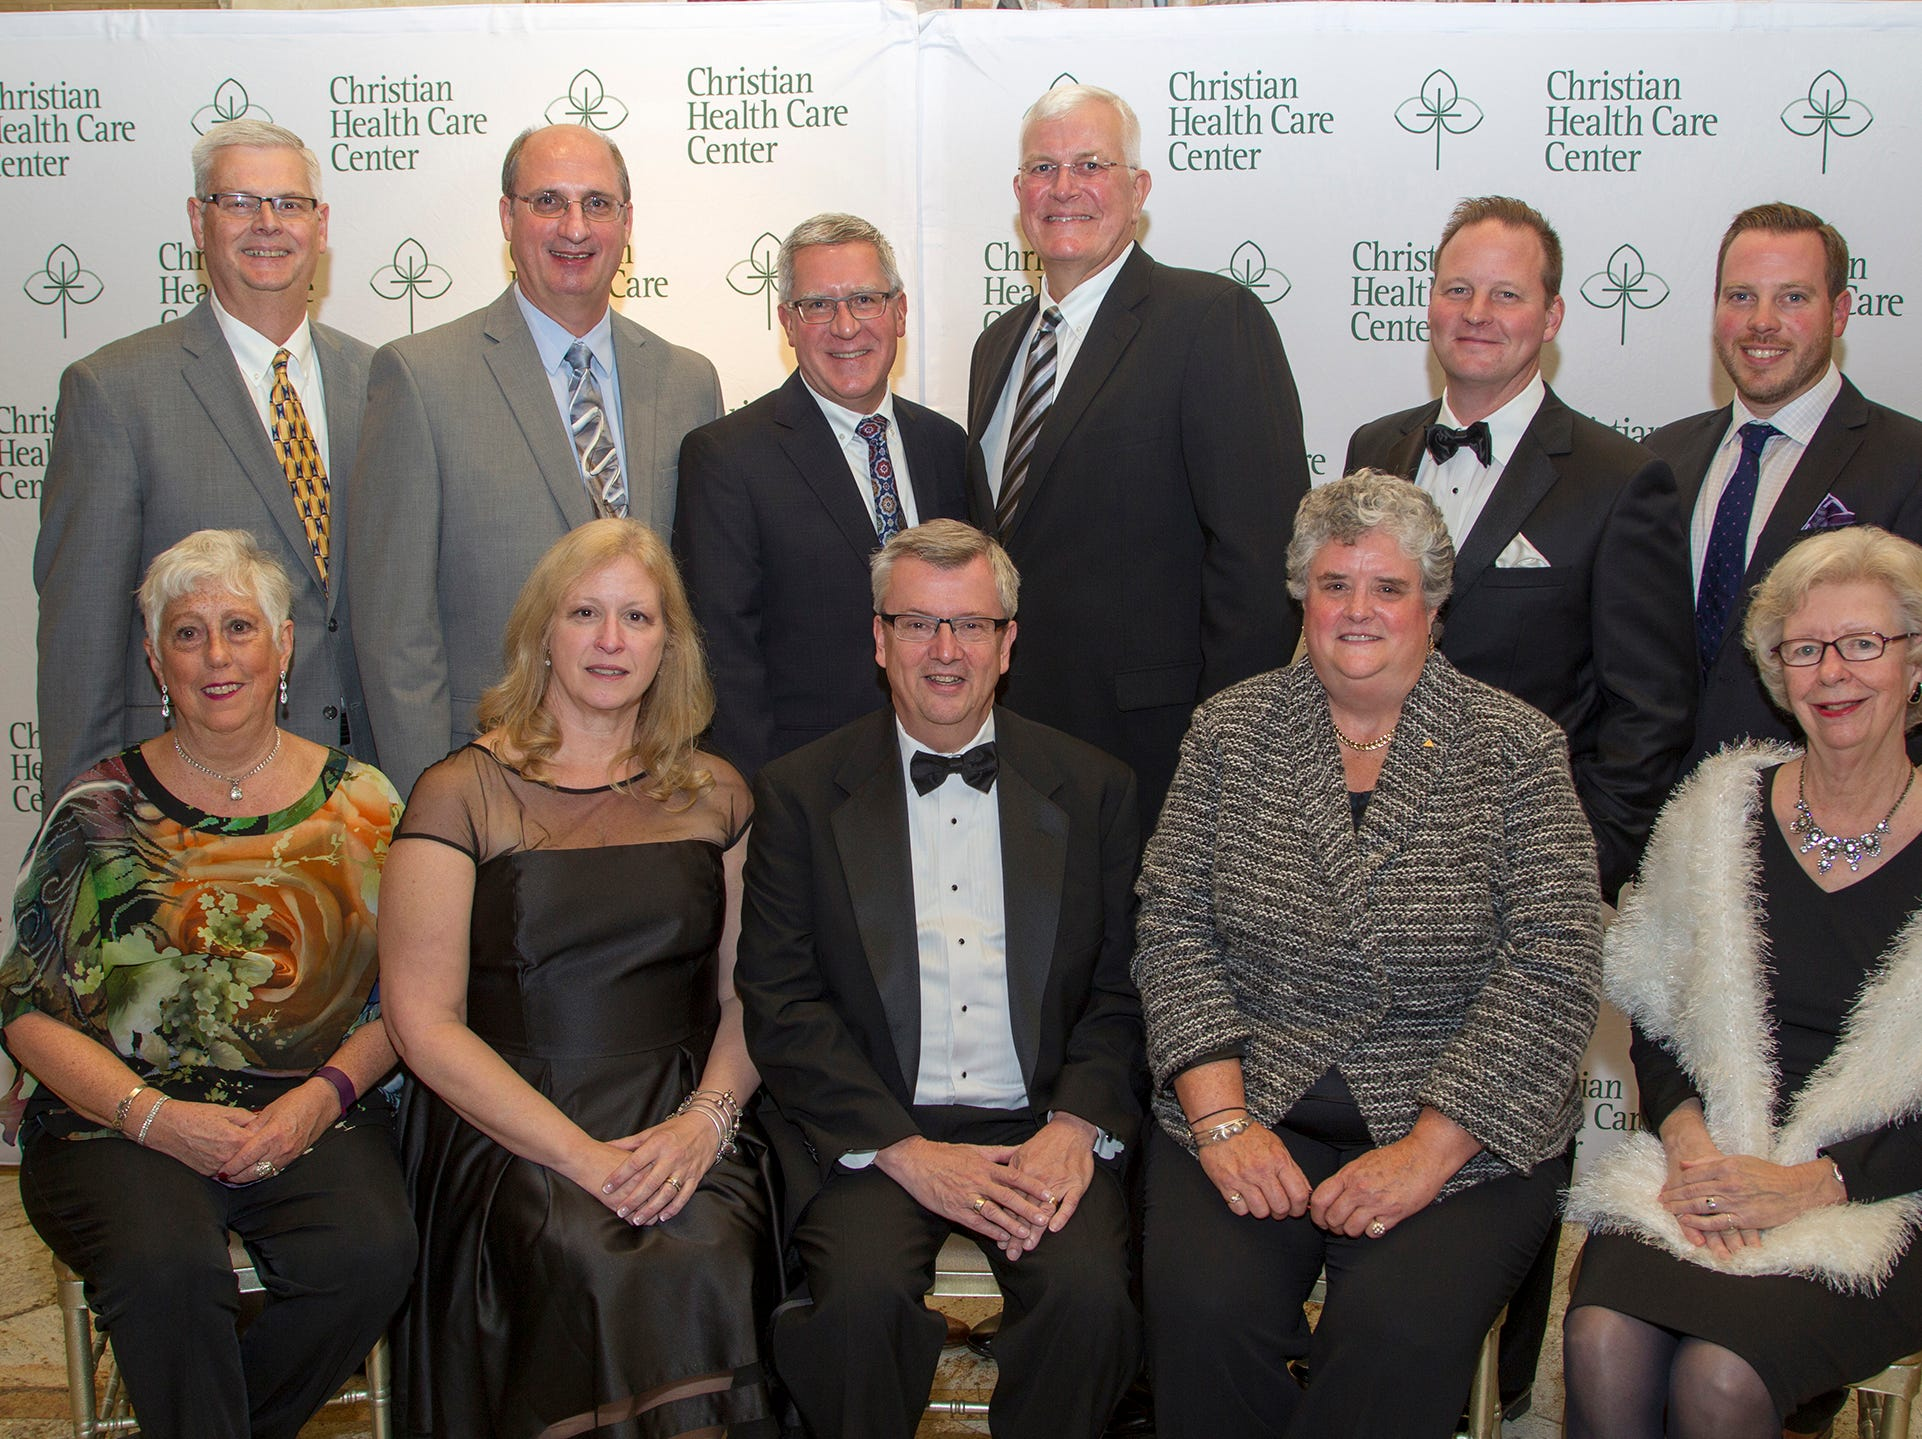 Seated from left, are Cynthia Bach, Beth Spoelstra, MSN, RNC-OB, Douglas A. Struyk, CPA, LNHA, CHCC President and CEO,  Julie Holland, Sandra DeYoung, RN, EdD. Standing from left, David Visbeen, Rev. Rod Gorter, Rick DeBel, CHCC Board of Trustees Chair, Thomas Dykhouse, Mark Reitsma, Matthew Kuiken. Christian Health Care Center held its ' A Celebration of Excellence' gala at the Venetian in Garfield.  10/17/2018